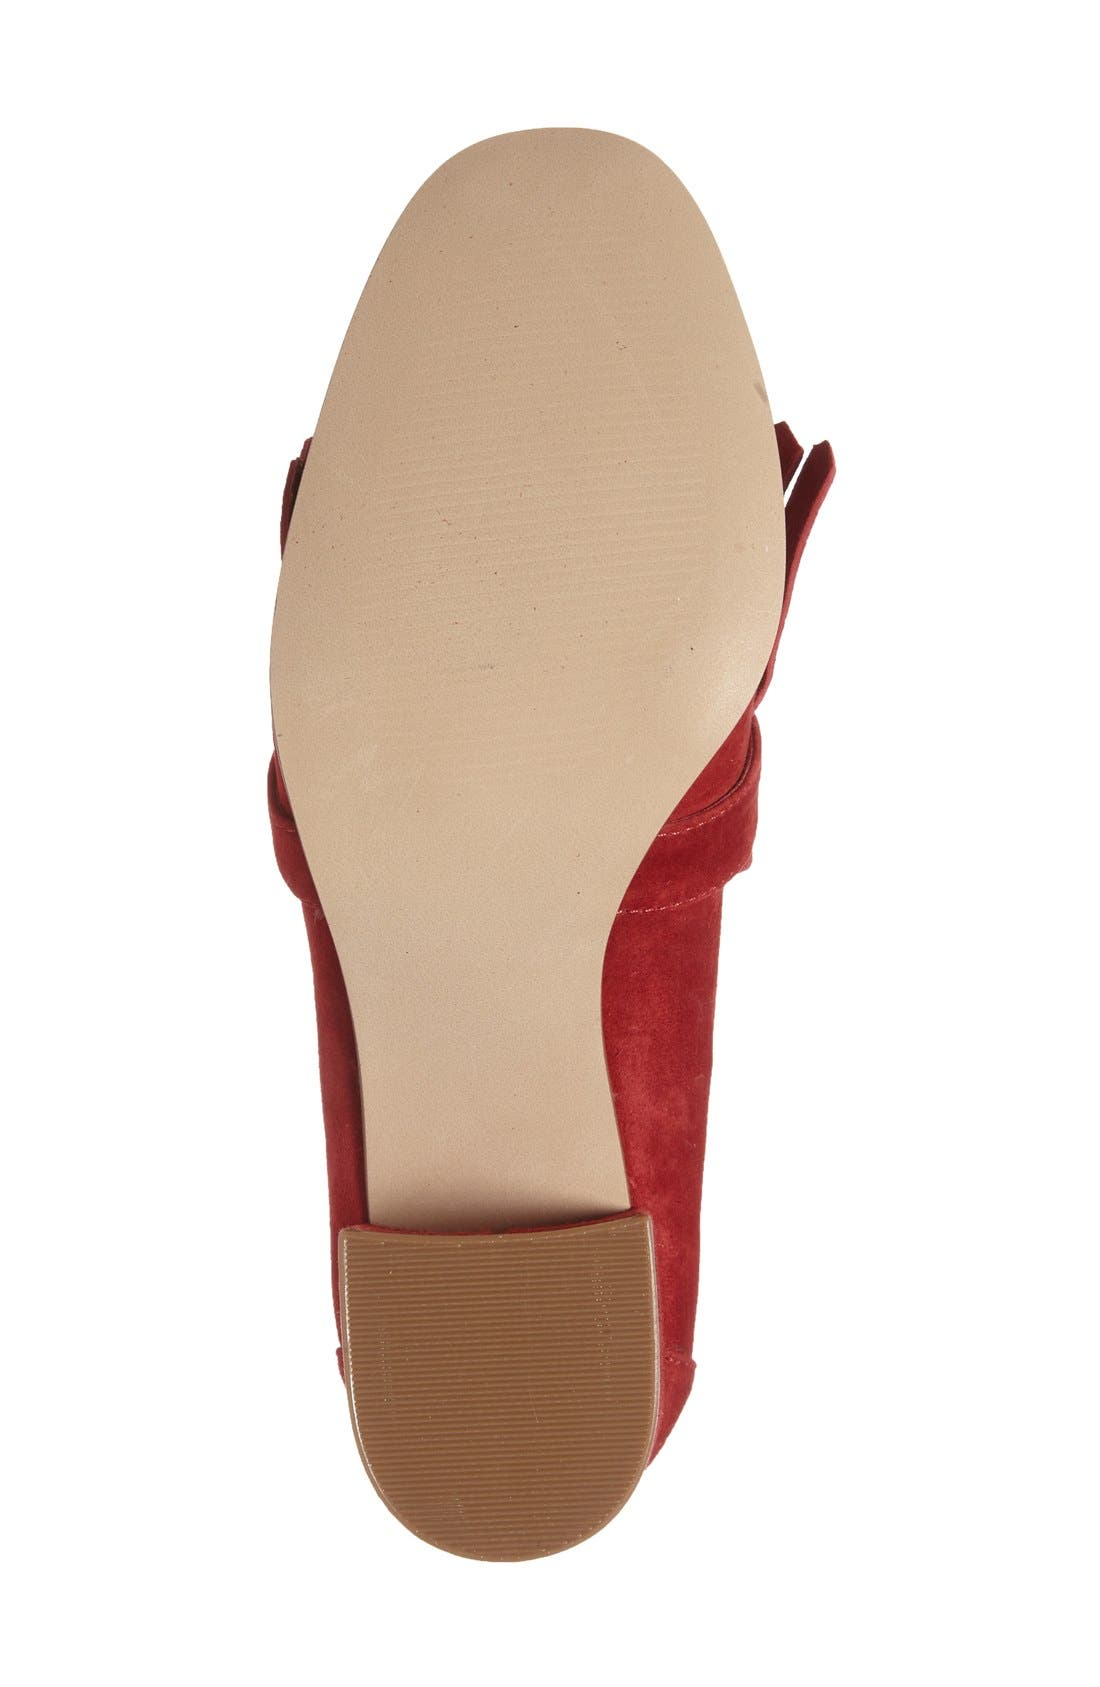 'Kate' Loafer Pumps,                             Alternate thumbnail 4, color,                             Red Suede